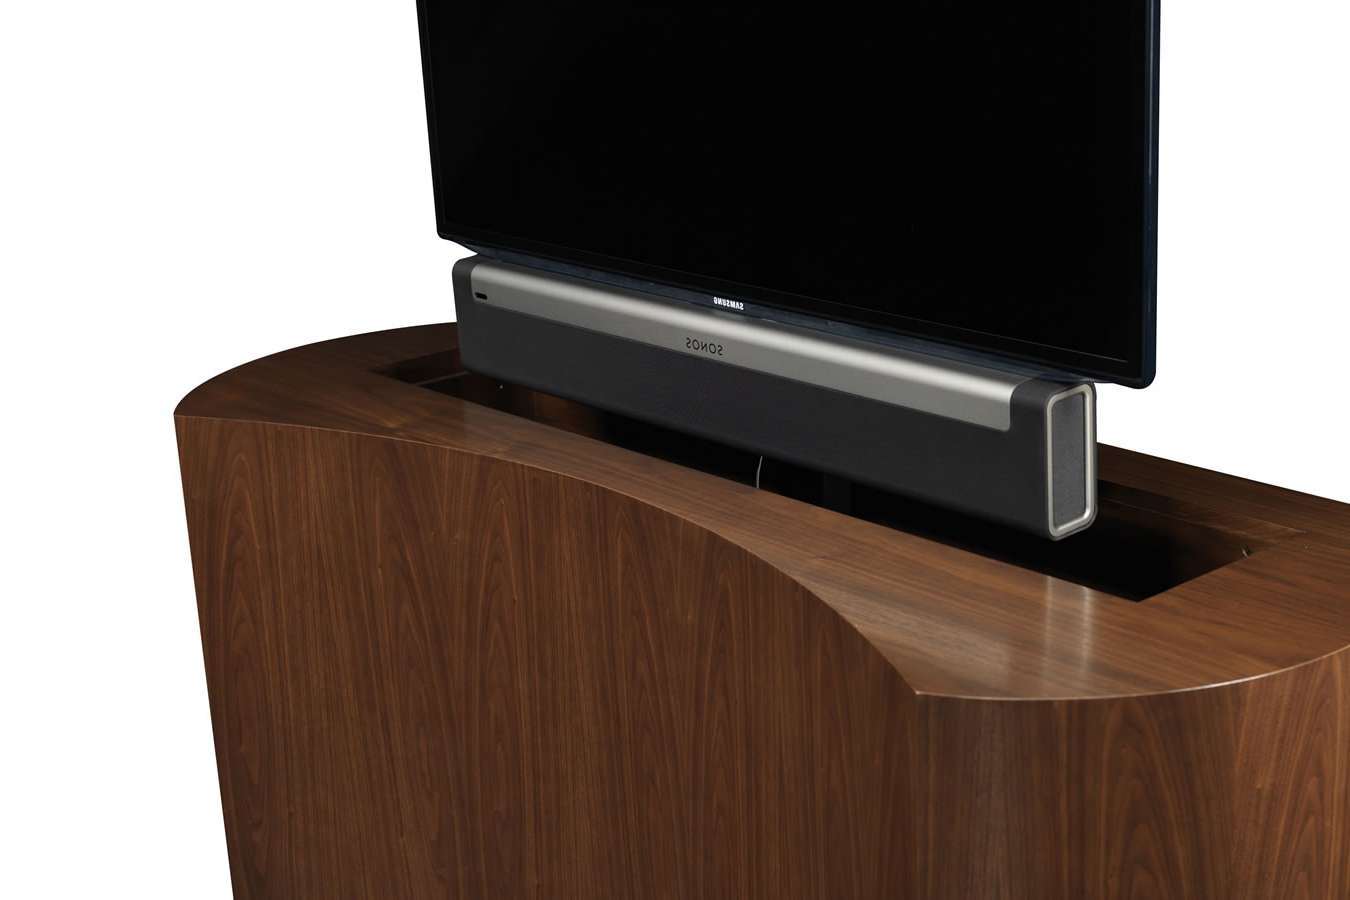 Sonos Sound Bar Playbar With Tv Lift Cabinet – Cabinet Tronix In Sonos Tv Stands (View 8 of 15)